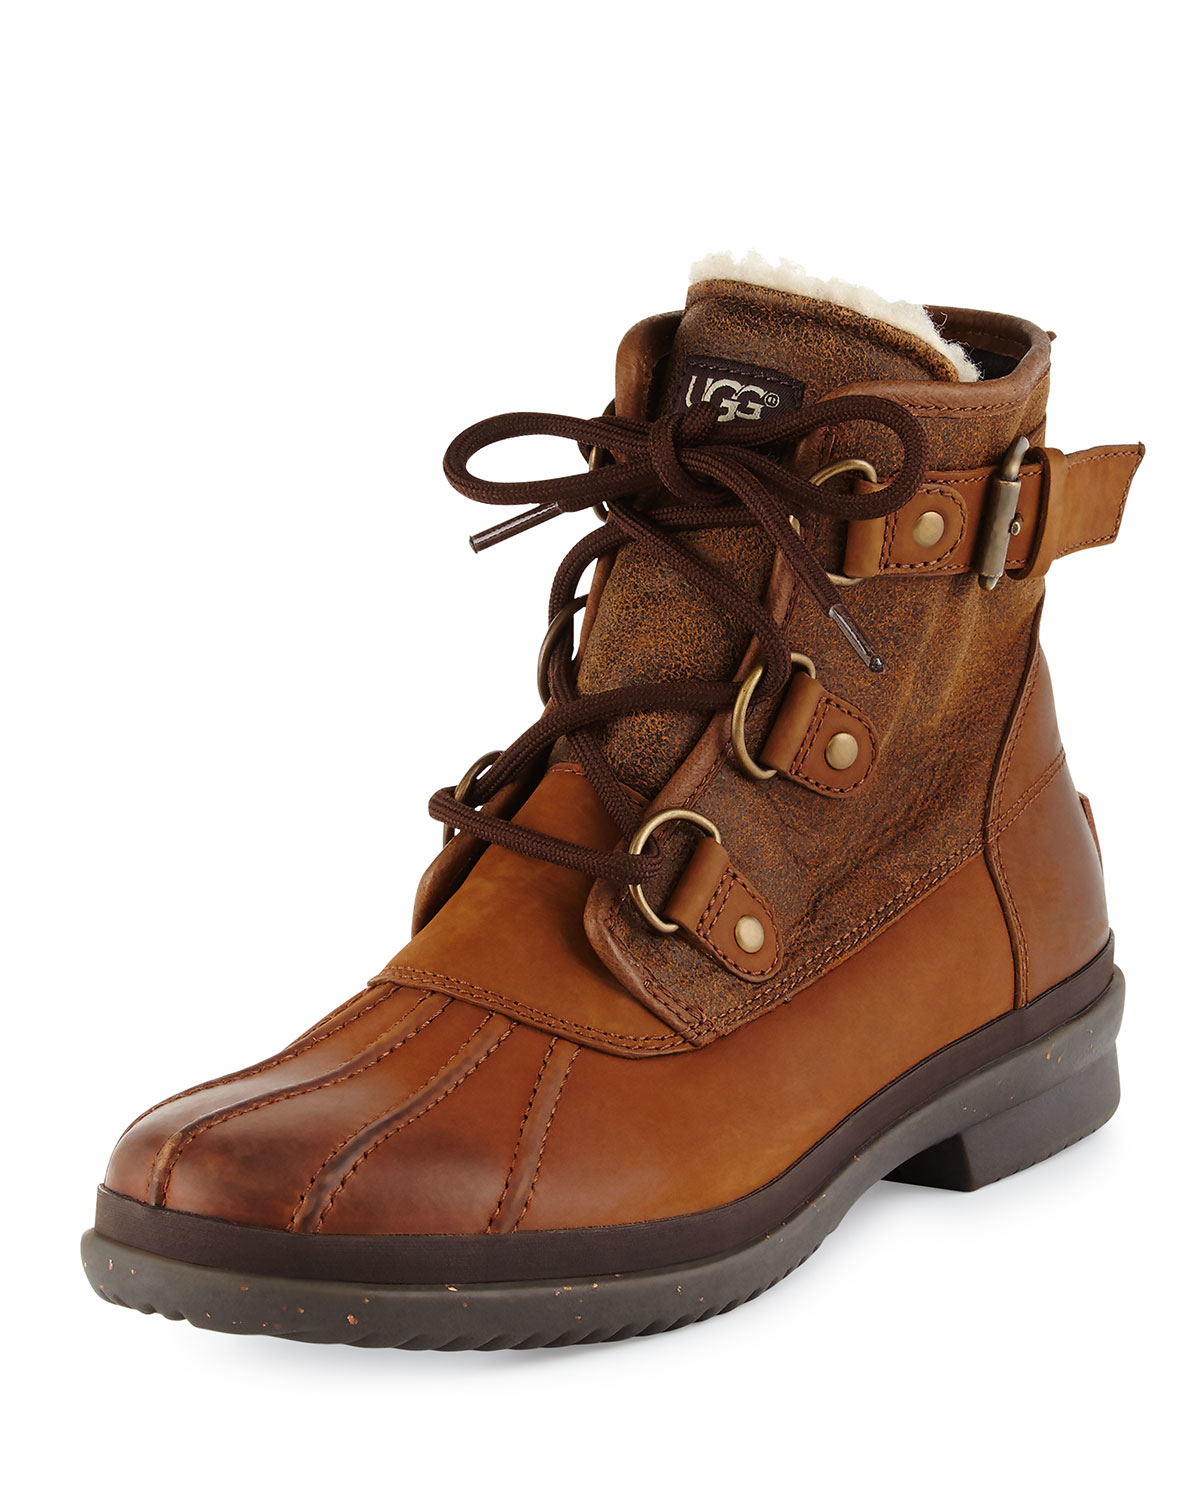 9abb5821ca2 UGG Brown Cecile Lace-up Weather Boot